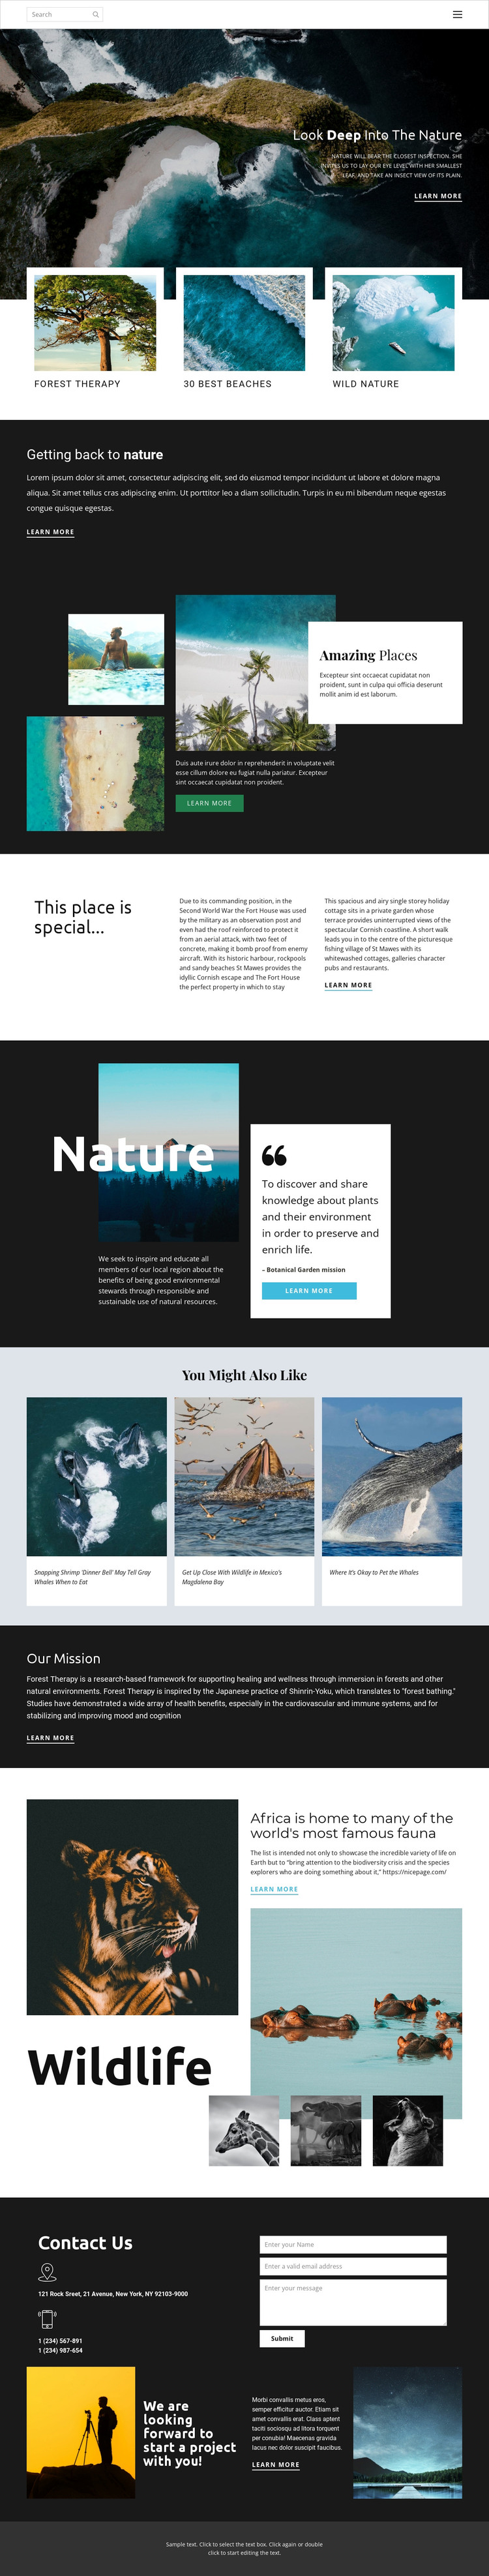 Exploring wildlife and nature WordPress Theme